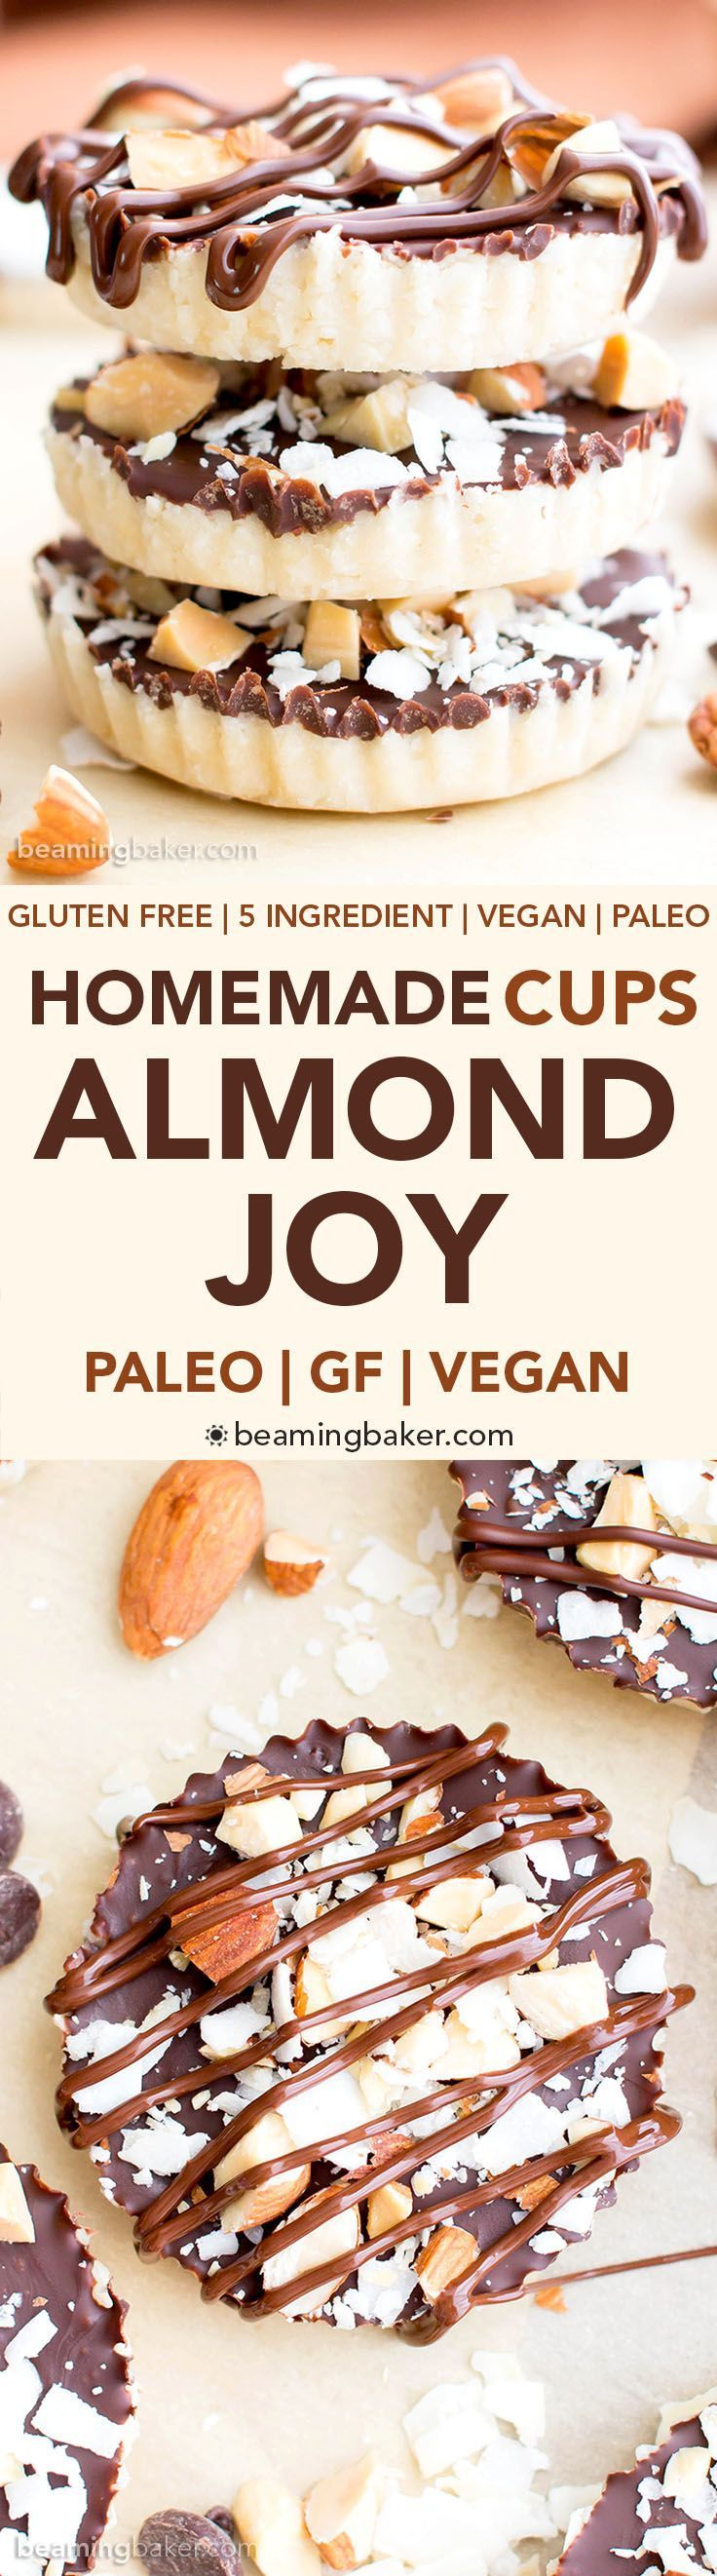 Homemade Almond Joy Cups (Paleo, V, GF): a 5-ingredient recipe for rich, nutty Almond Joy cups layered in velvety chocolate.